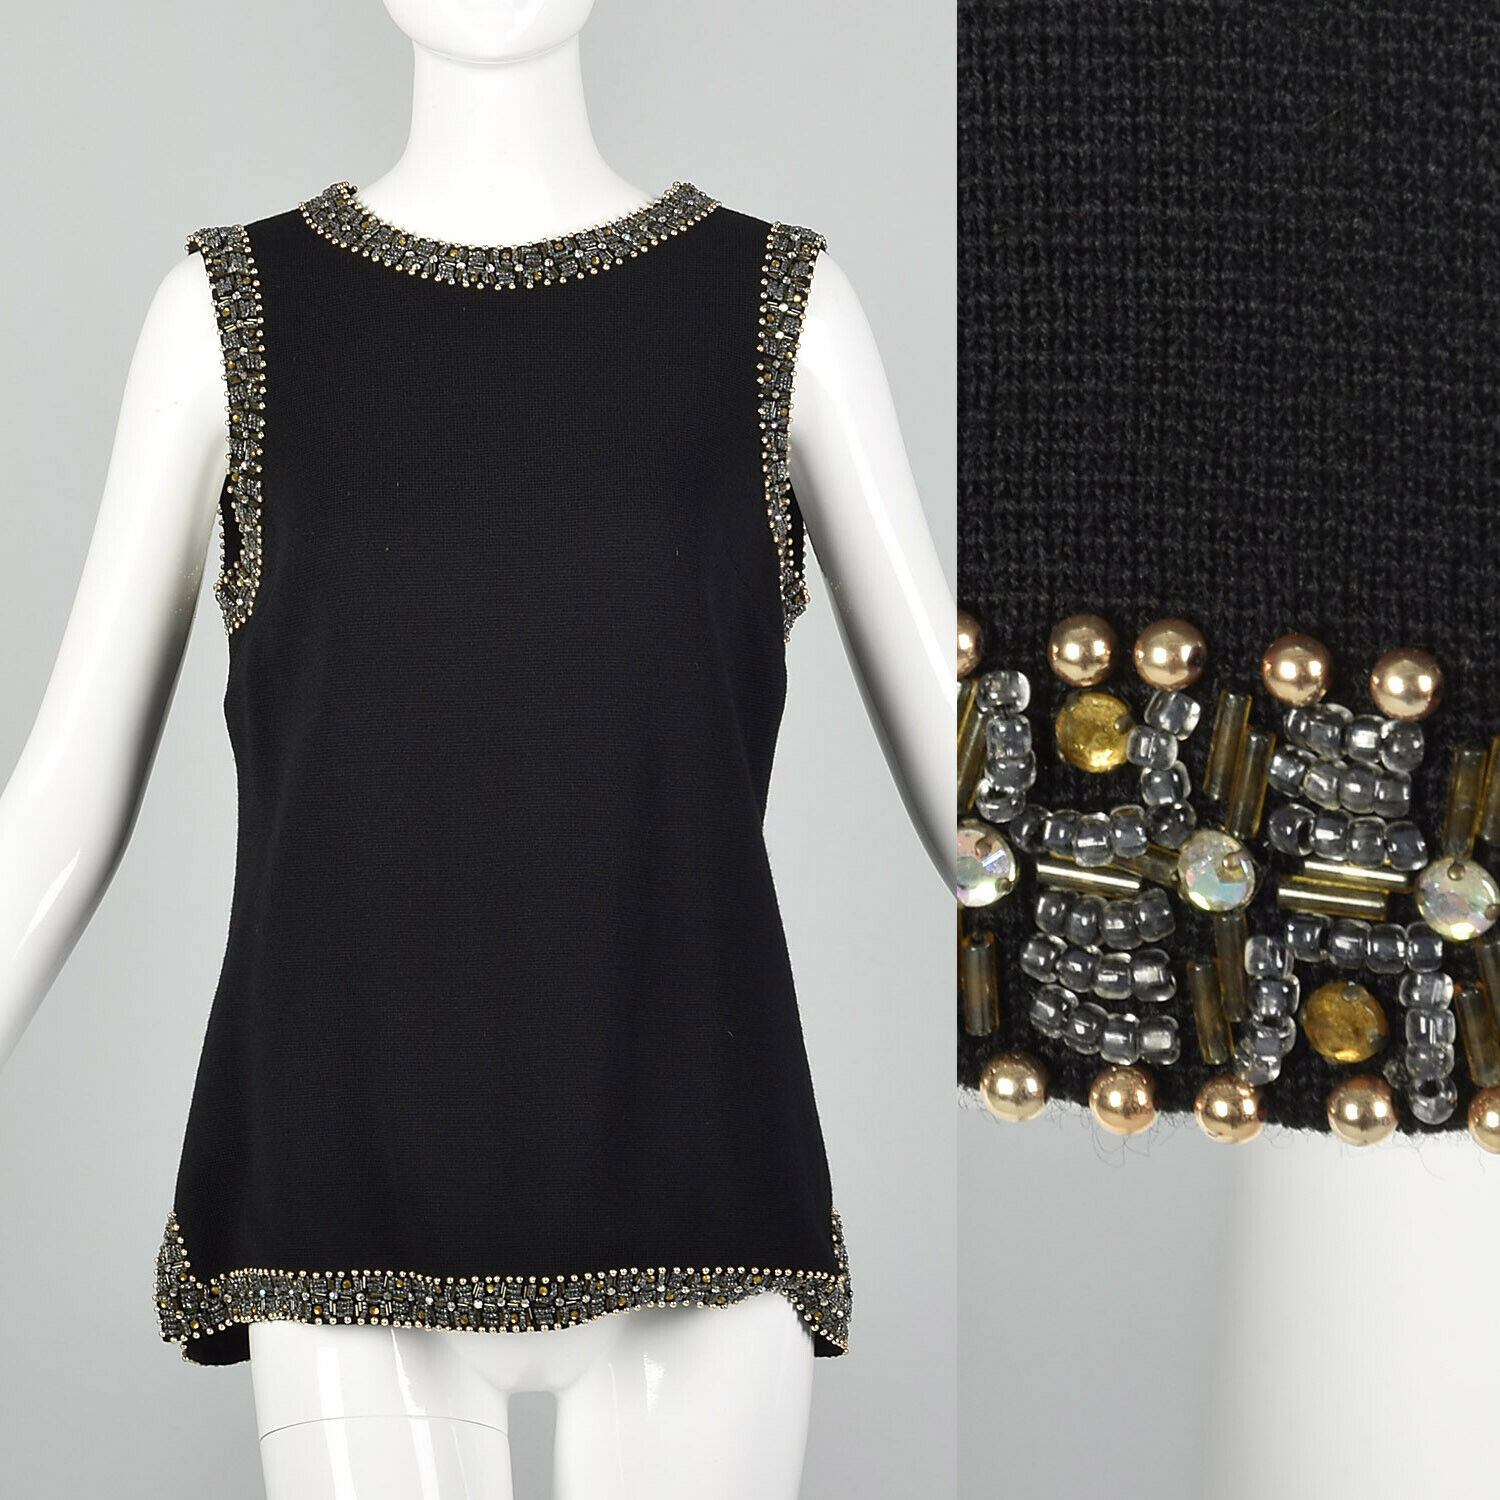 Medium 1960s schwarz Knit Tunic Top VTG Sleeveless Blouse 60s Beaded Large Tank